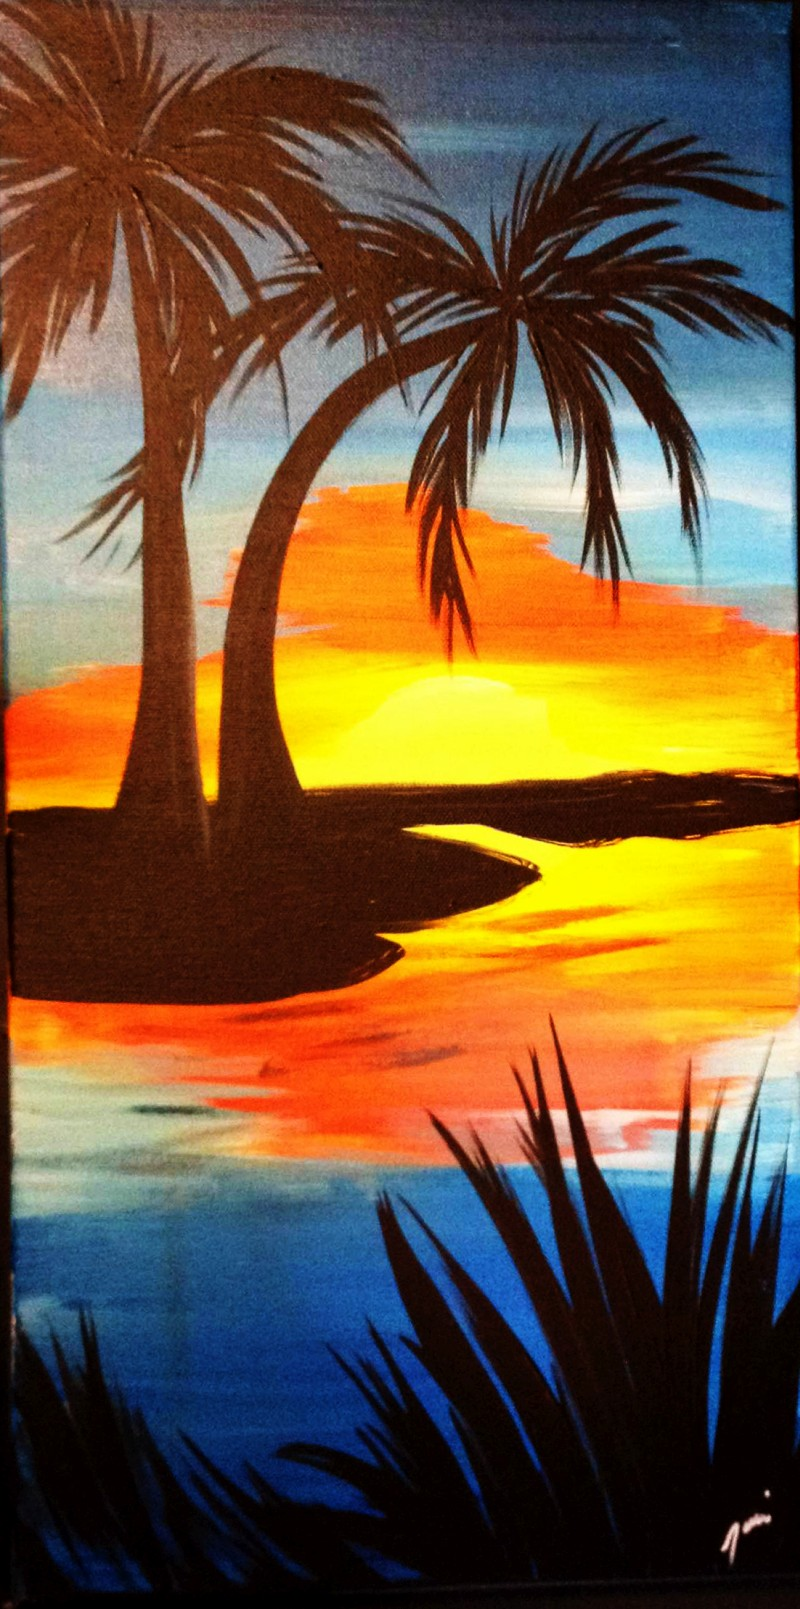 Sunset Oasis - IN STUDIO CLASS - Yes we are back! Limited Seating : Only 10 Seats. Book Now!